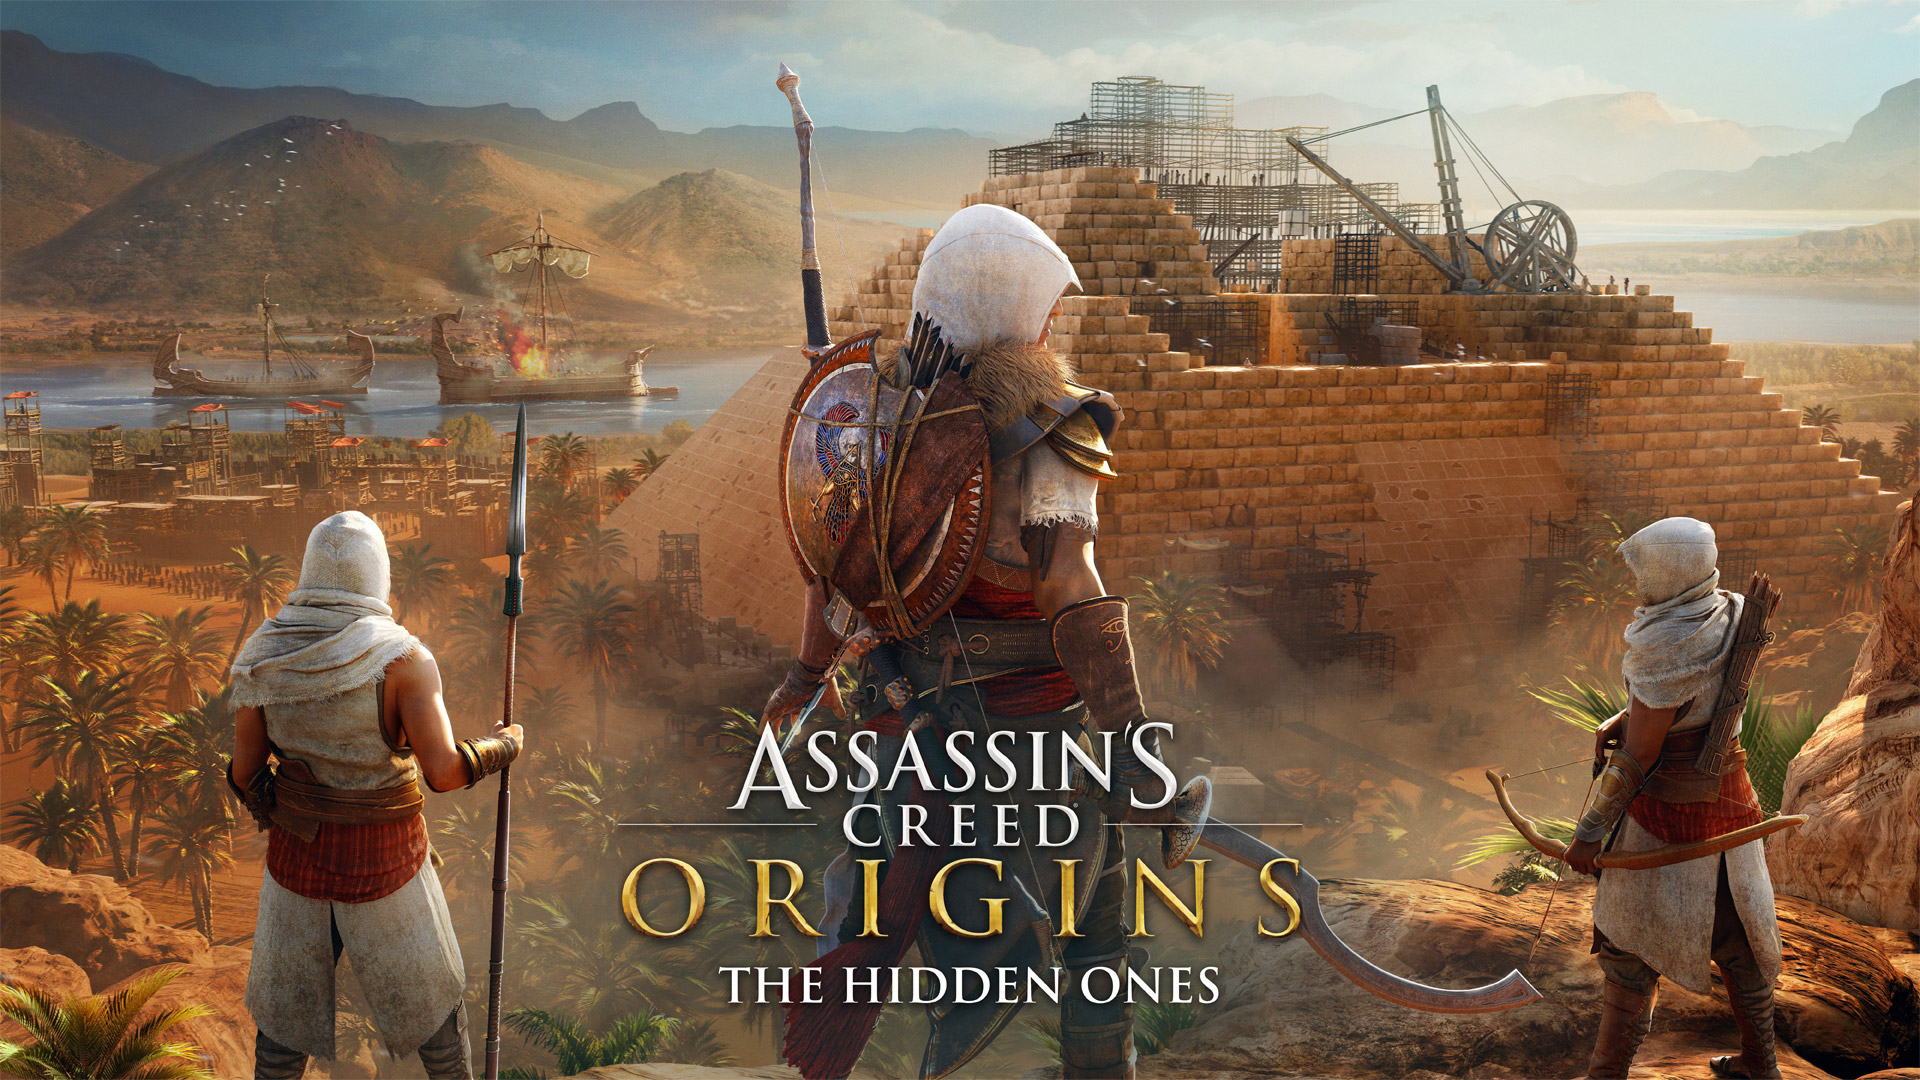 https://vignette.wikia.nocookie.net/assassinscreed/images/2/20/ACO_The_Hidden_Ones.jpg/revision/latest?cb=20171011113705